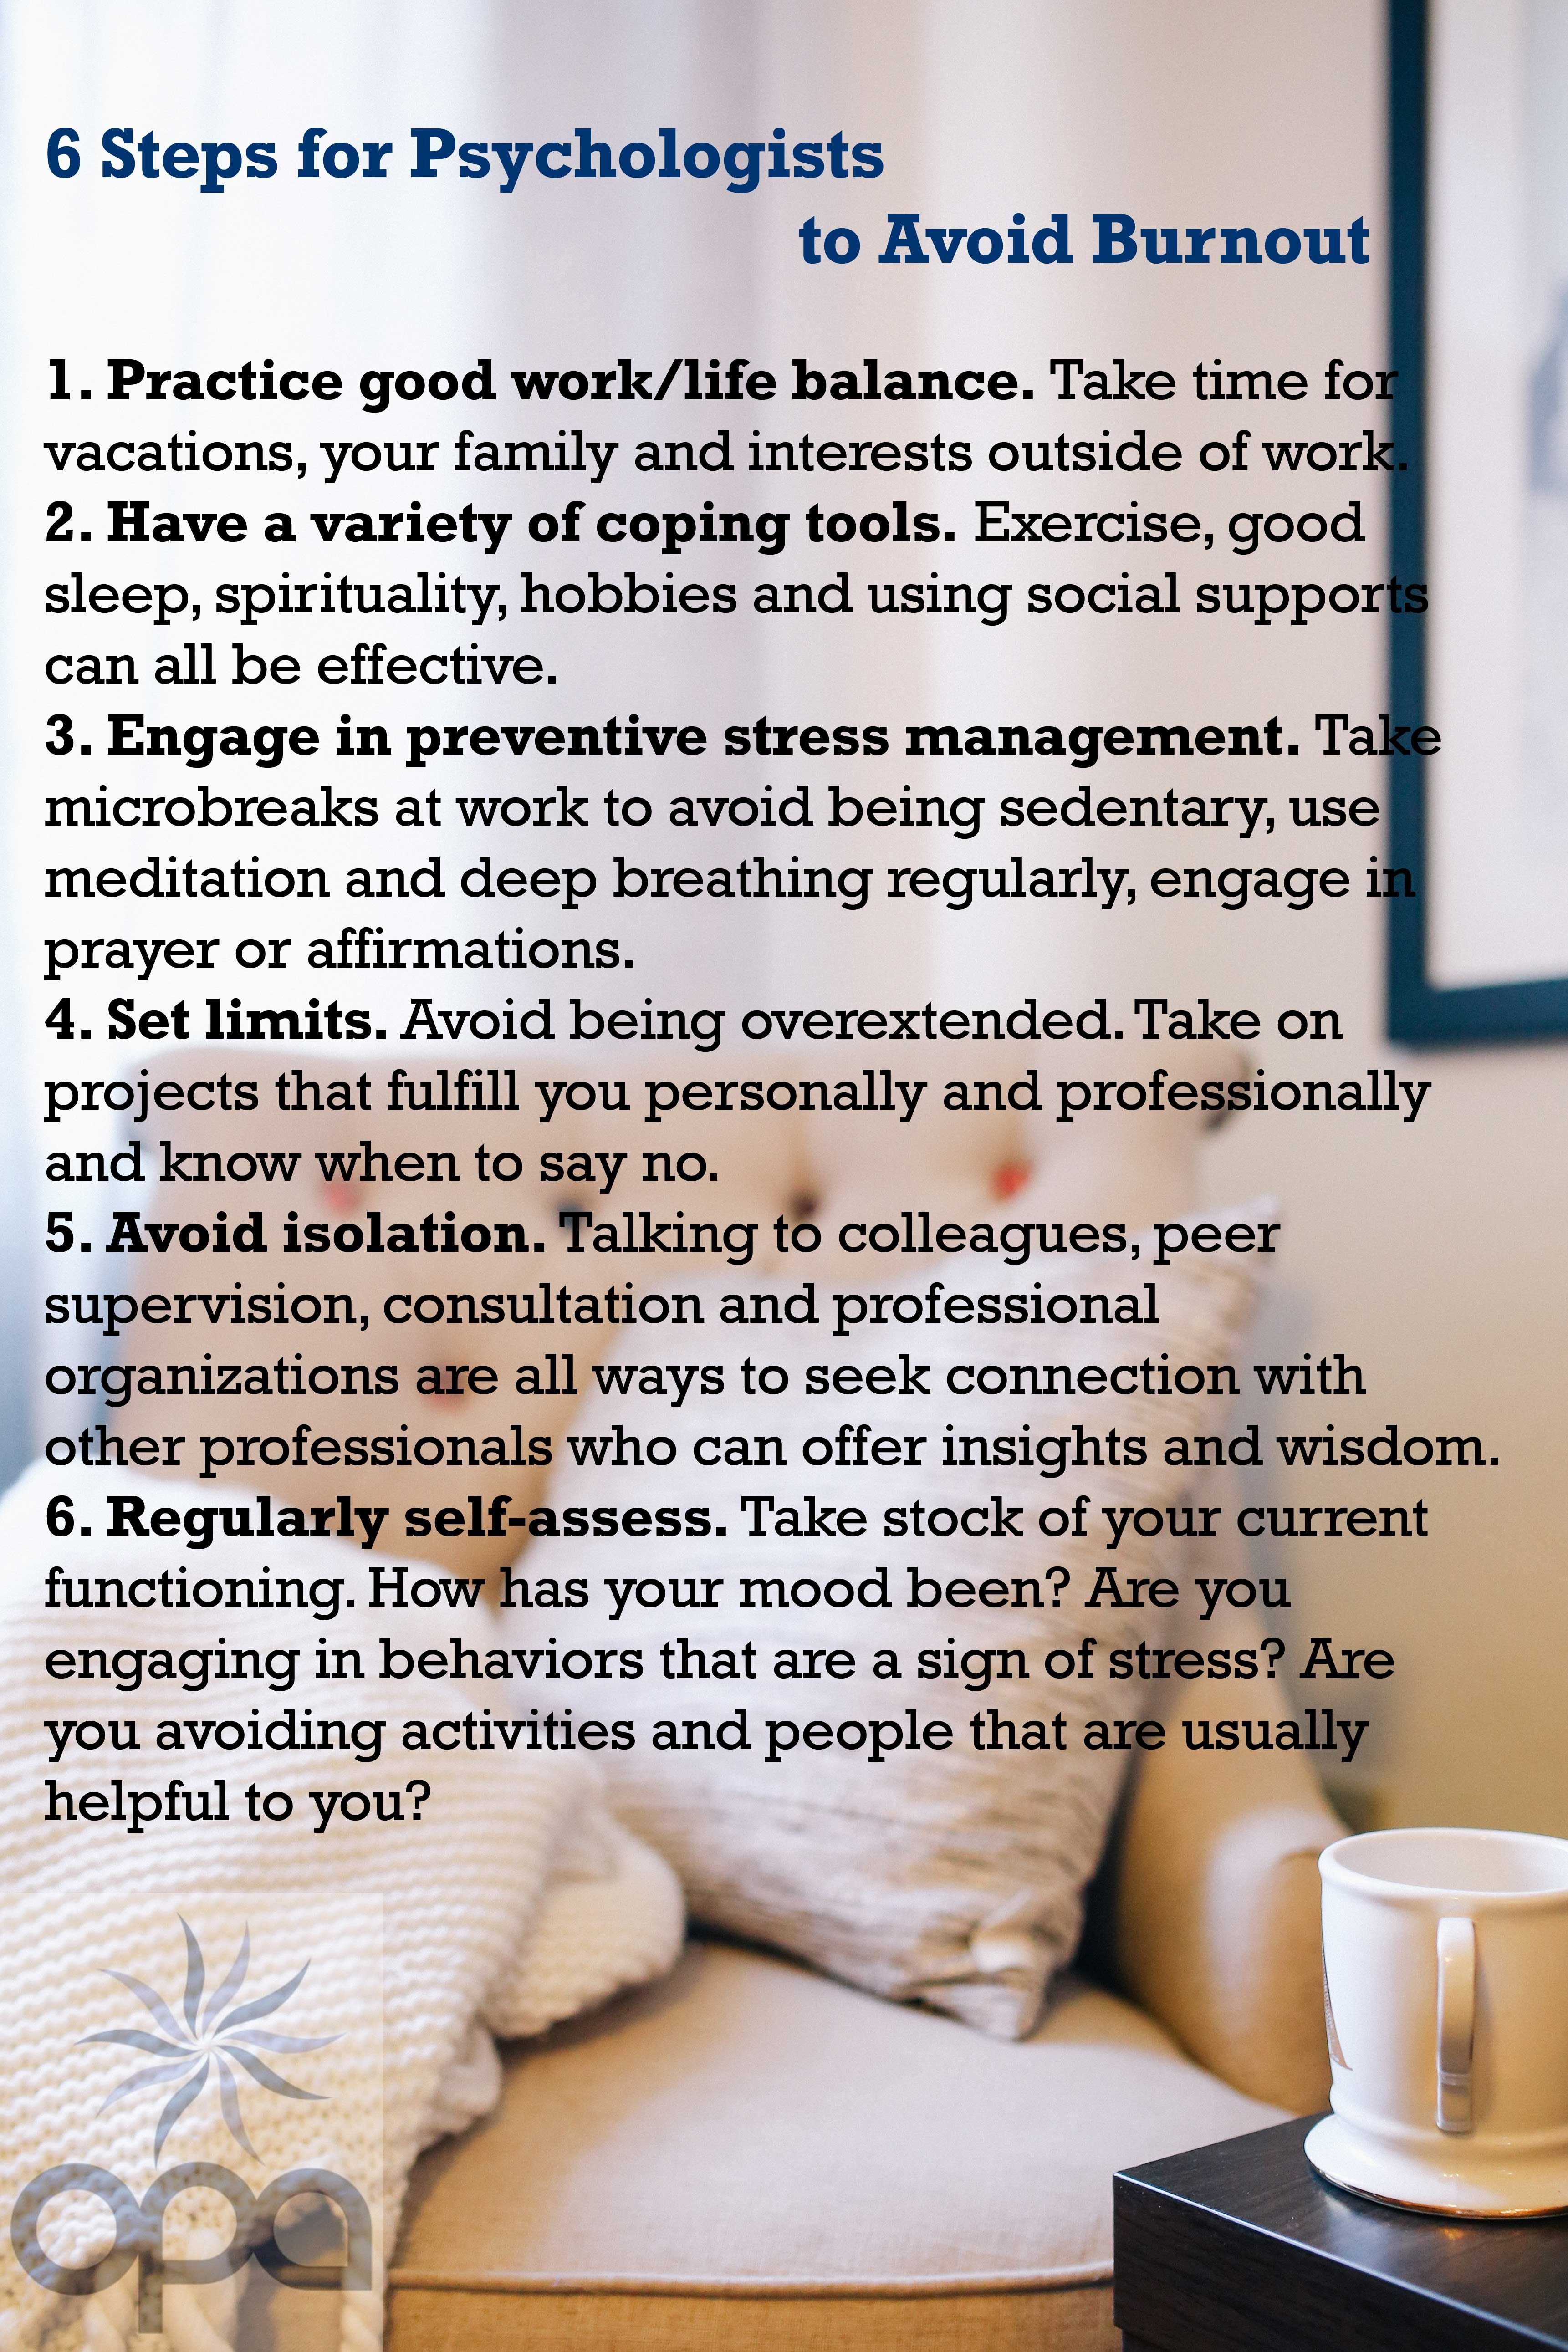 Extreme Or Continued Stress Can Lead To Burn Out Stress Management For Everyone Is A Must Be